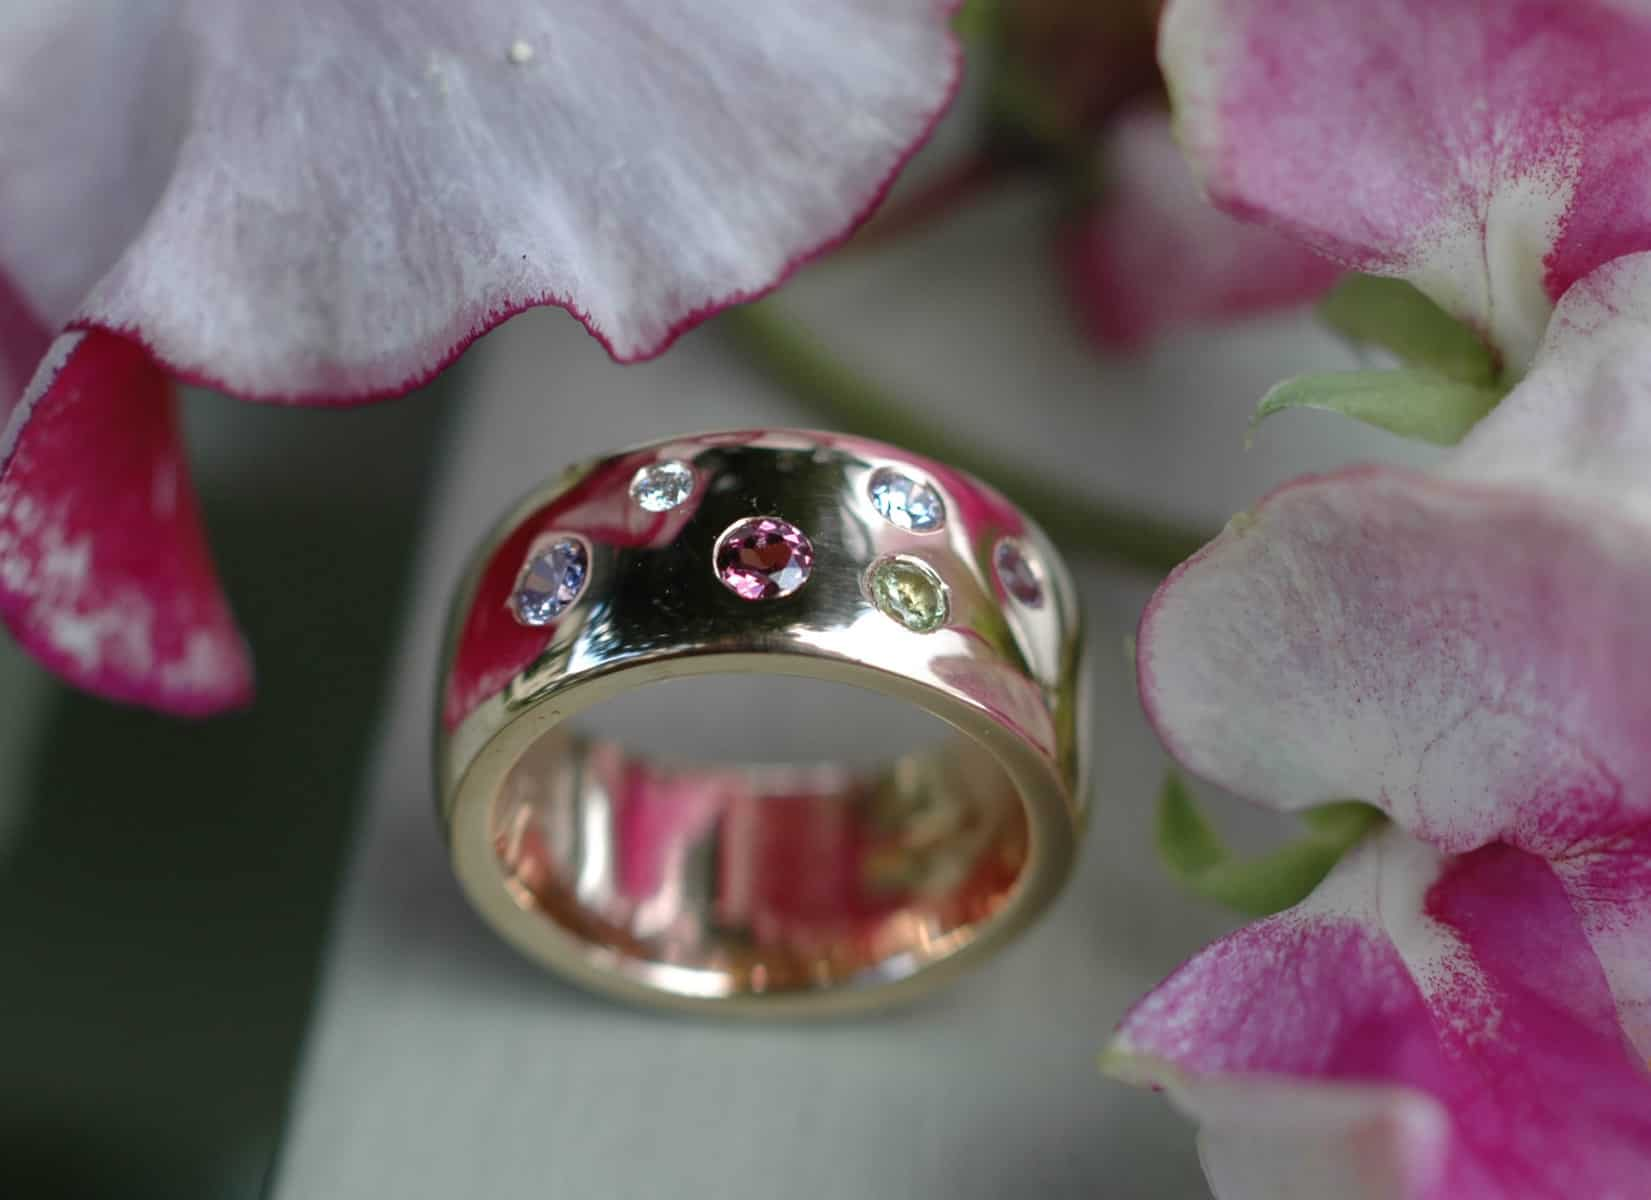 Carinas ring